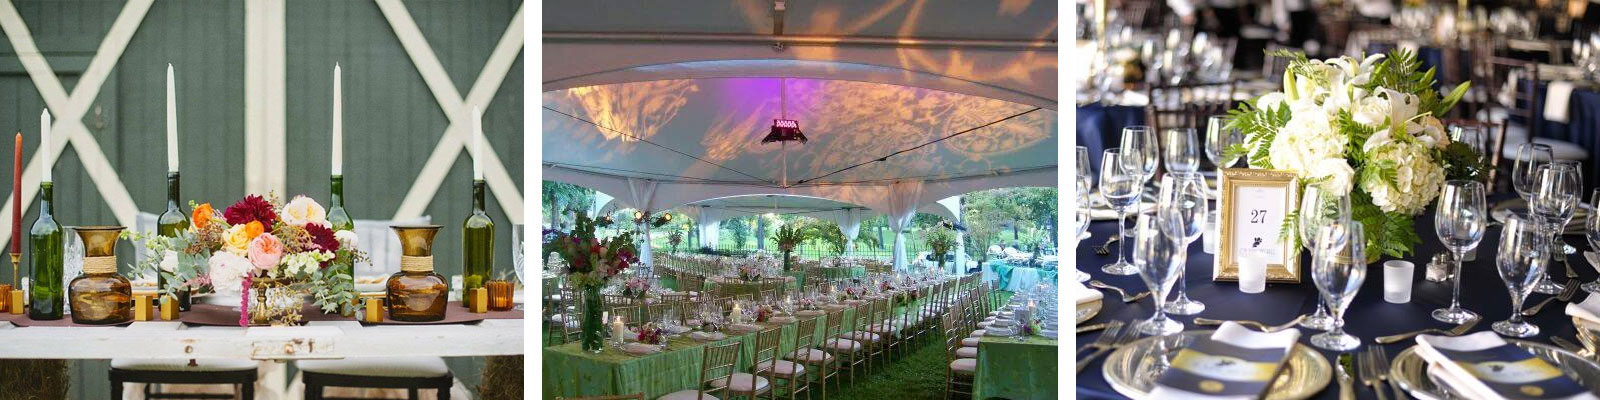 Tents & Staging Rentals in Tulsa Metro